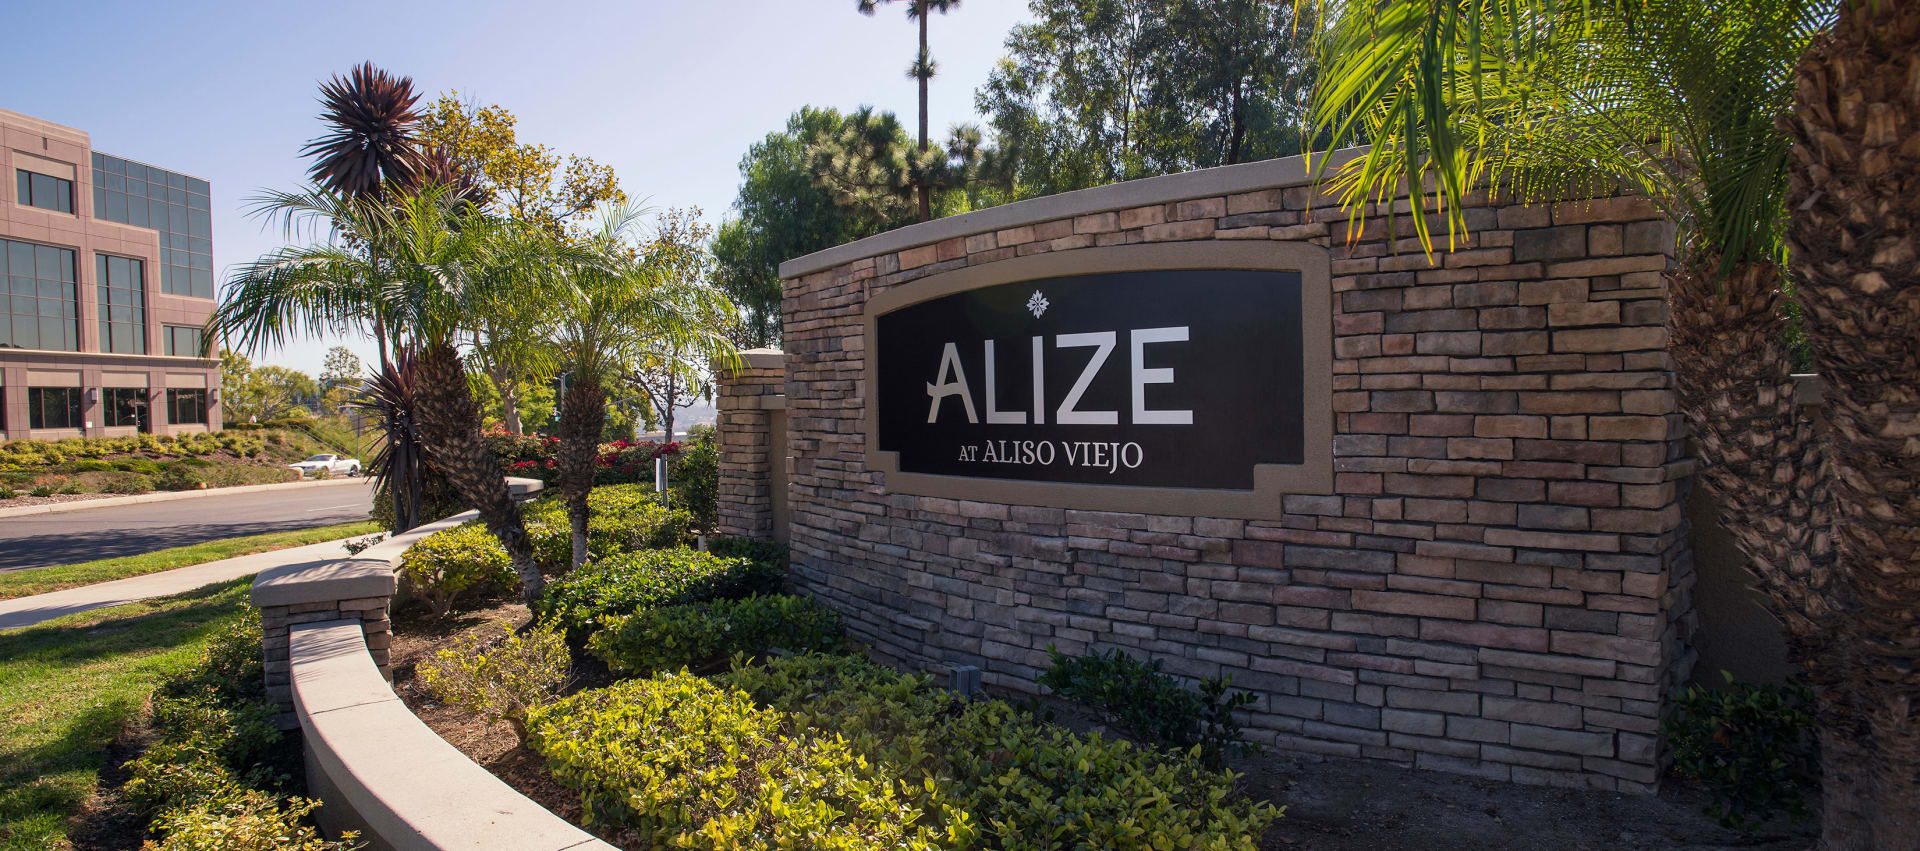 Alize at Aliso Veijo Apartments Street Sign